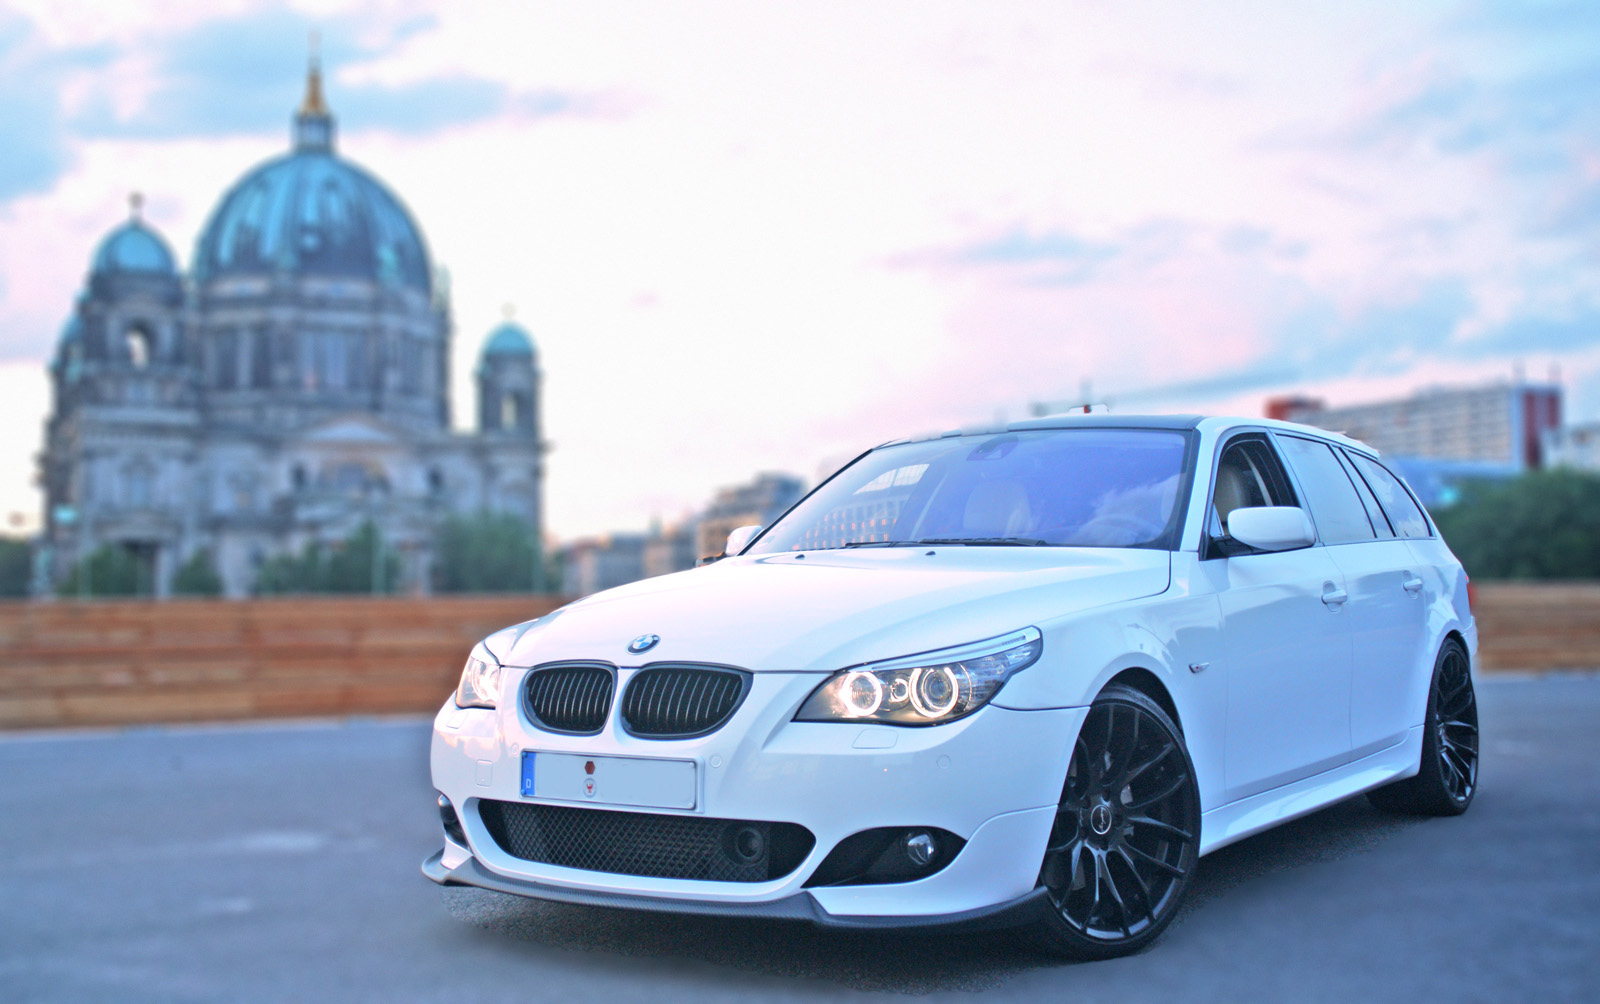 2008  BMW 535d E61 Hartge Ecu-Remap Tune picture, mods, upgrades